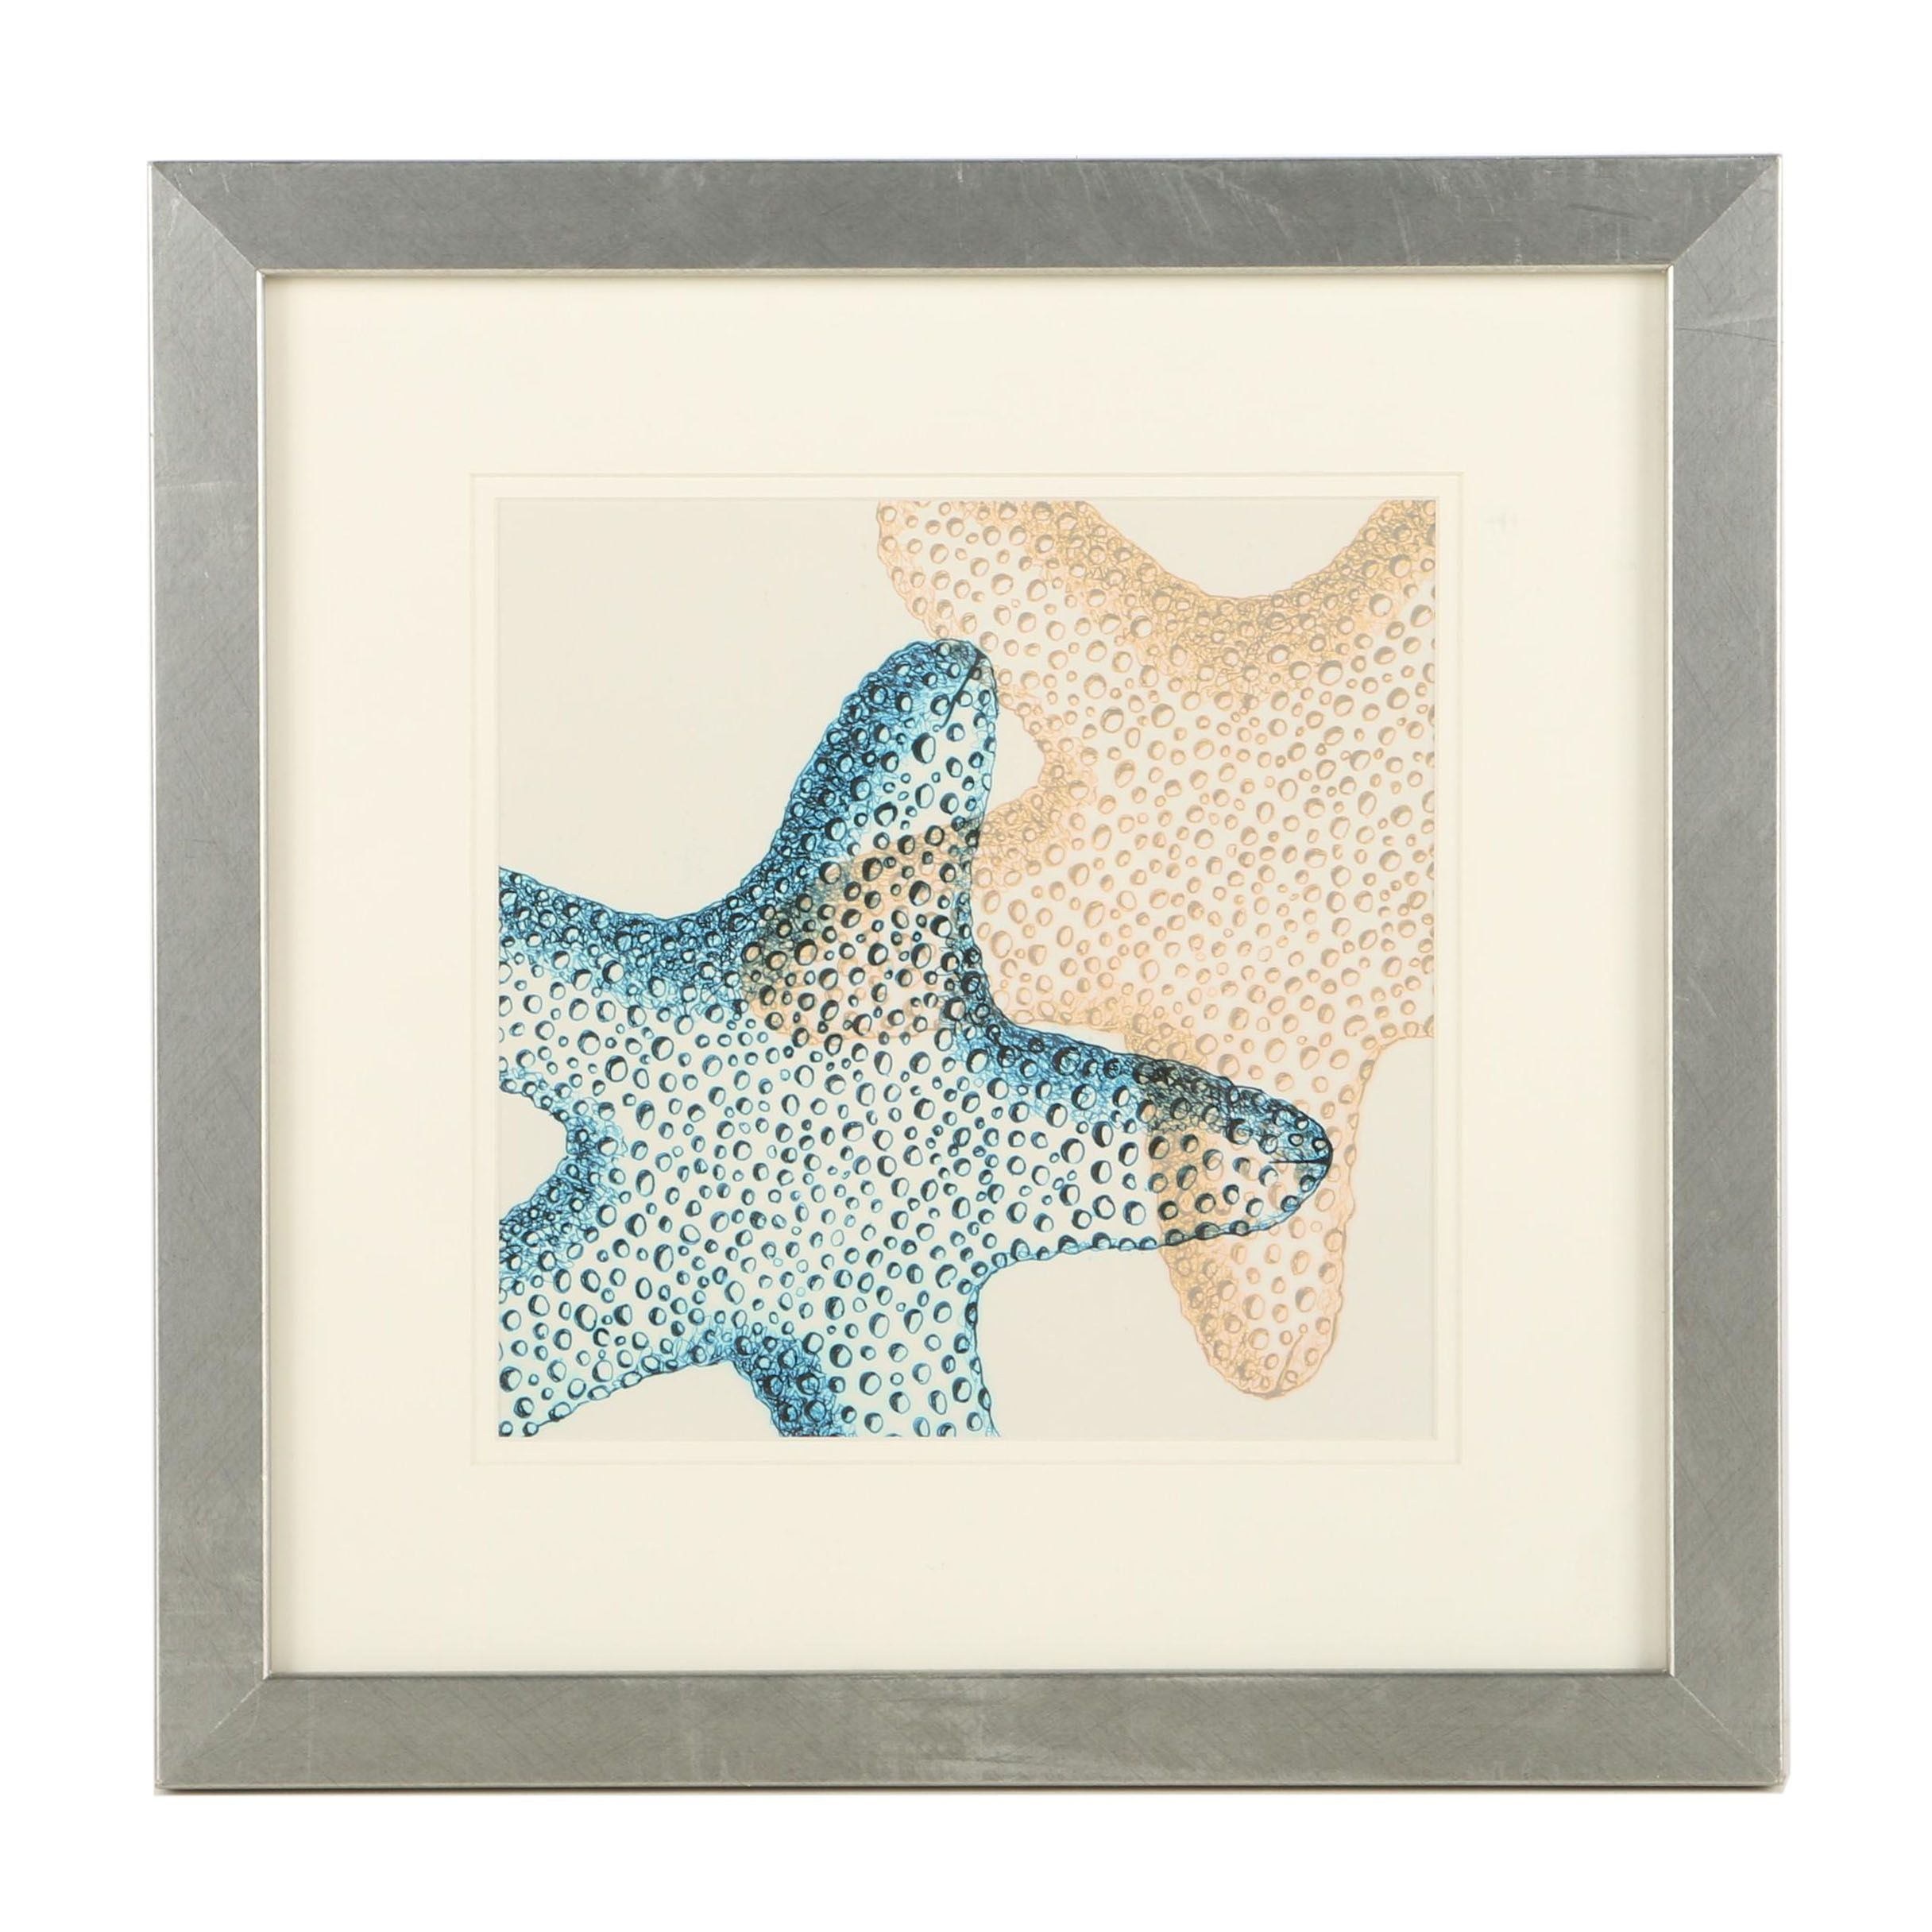 Offset Lithograph Print on Paper After Illustration of Two Starfish